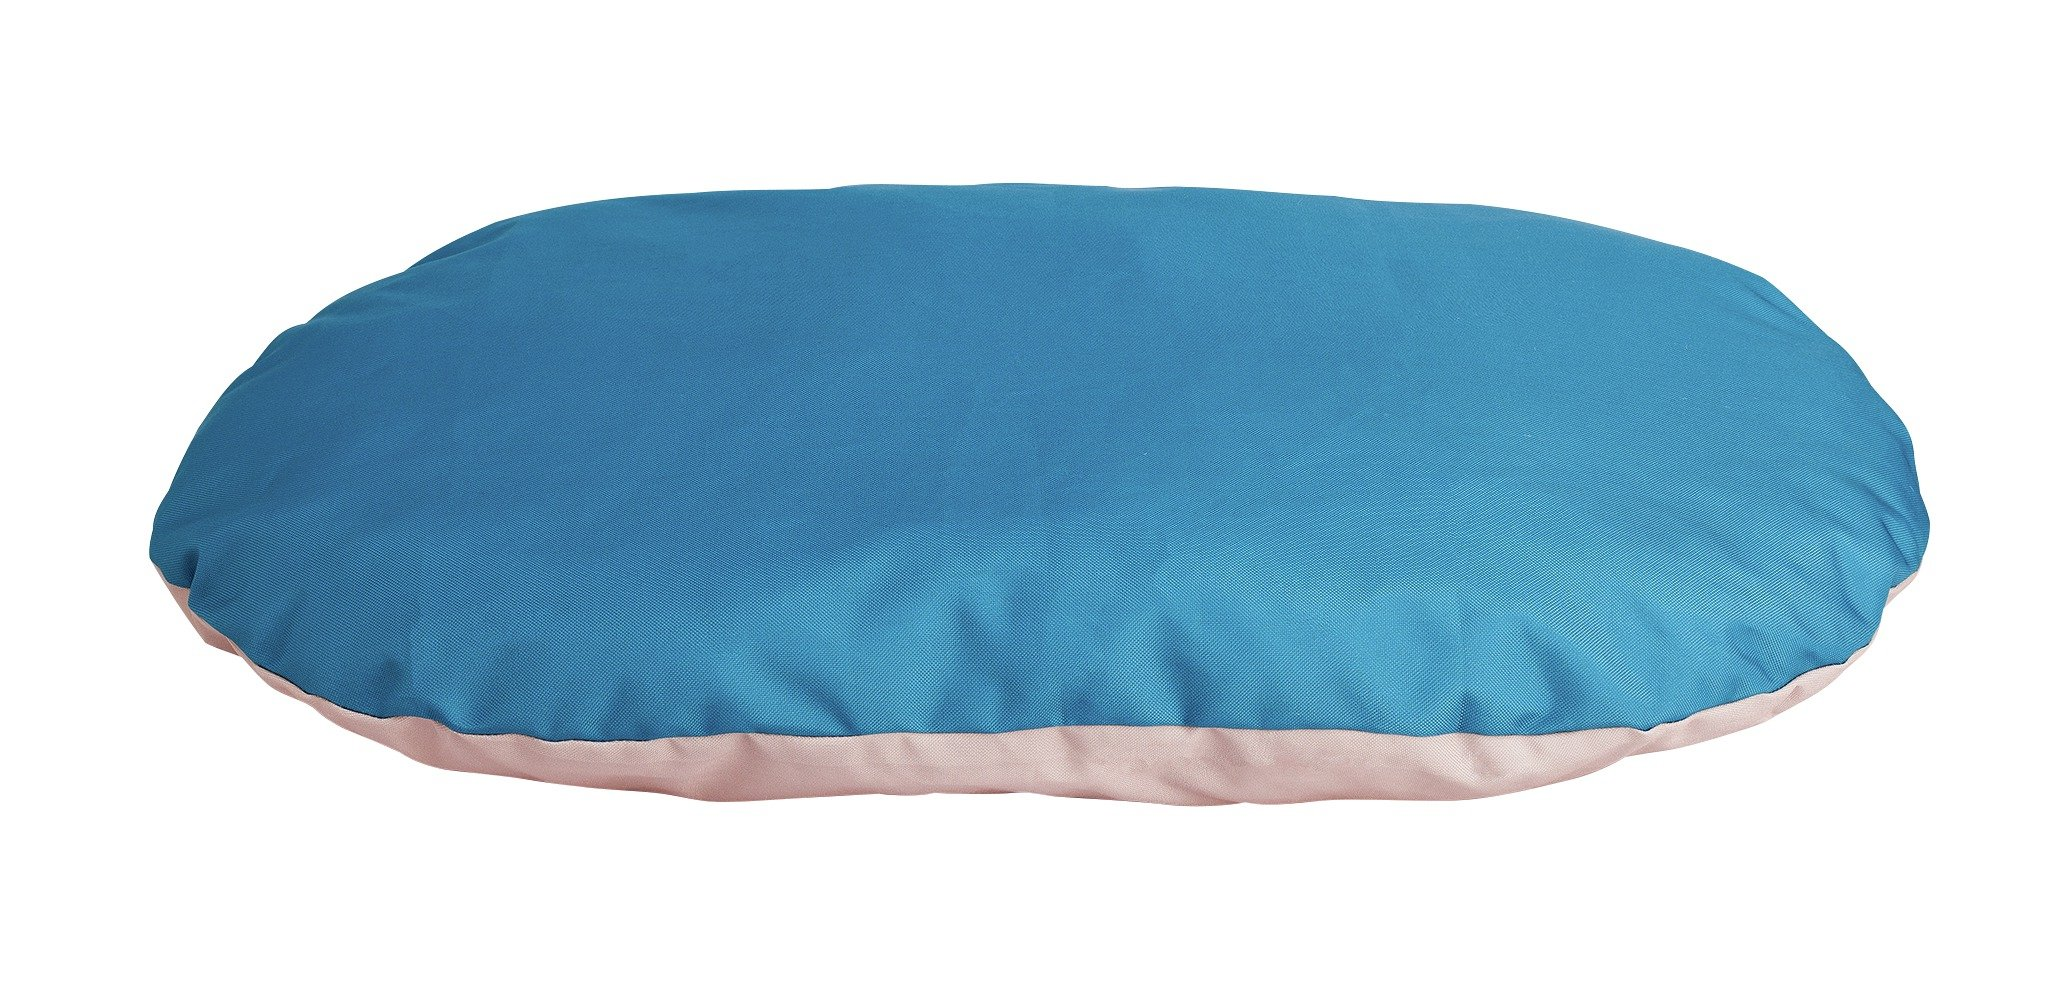 Image of Oxford Outdoor Extra Large Pet Cushion